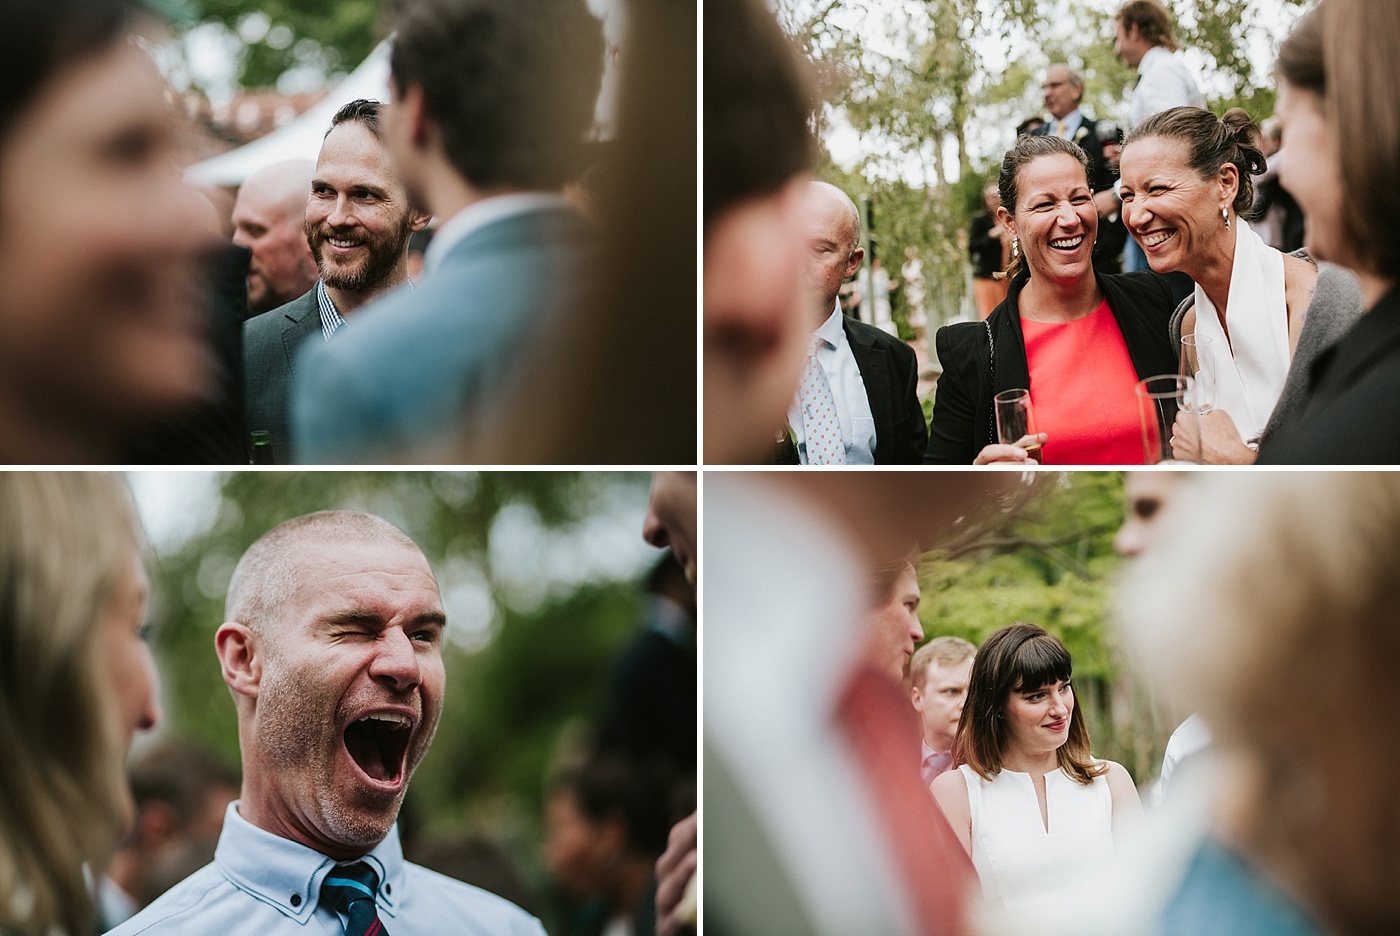 Brooke&David_Melbourne-Quirky-Relaxed-Fun-Casual-Backyard-Wedding_Melbourne-Wedding-Photography-79